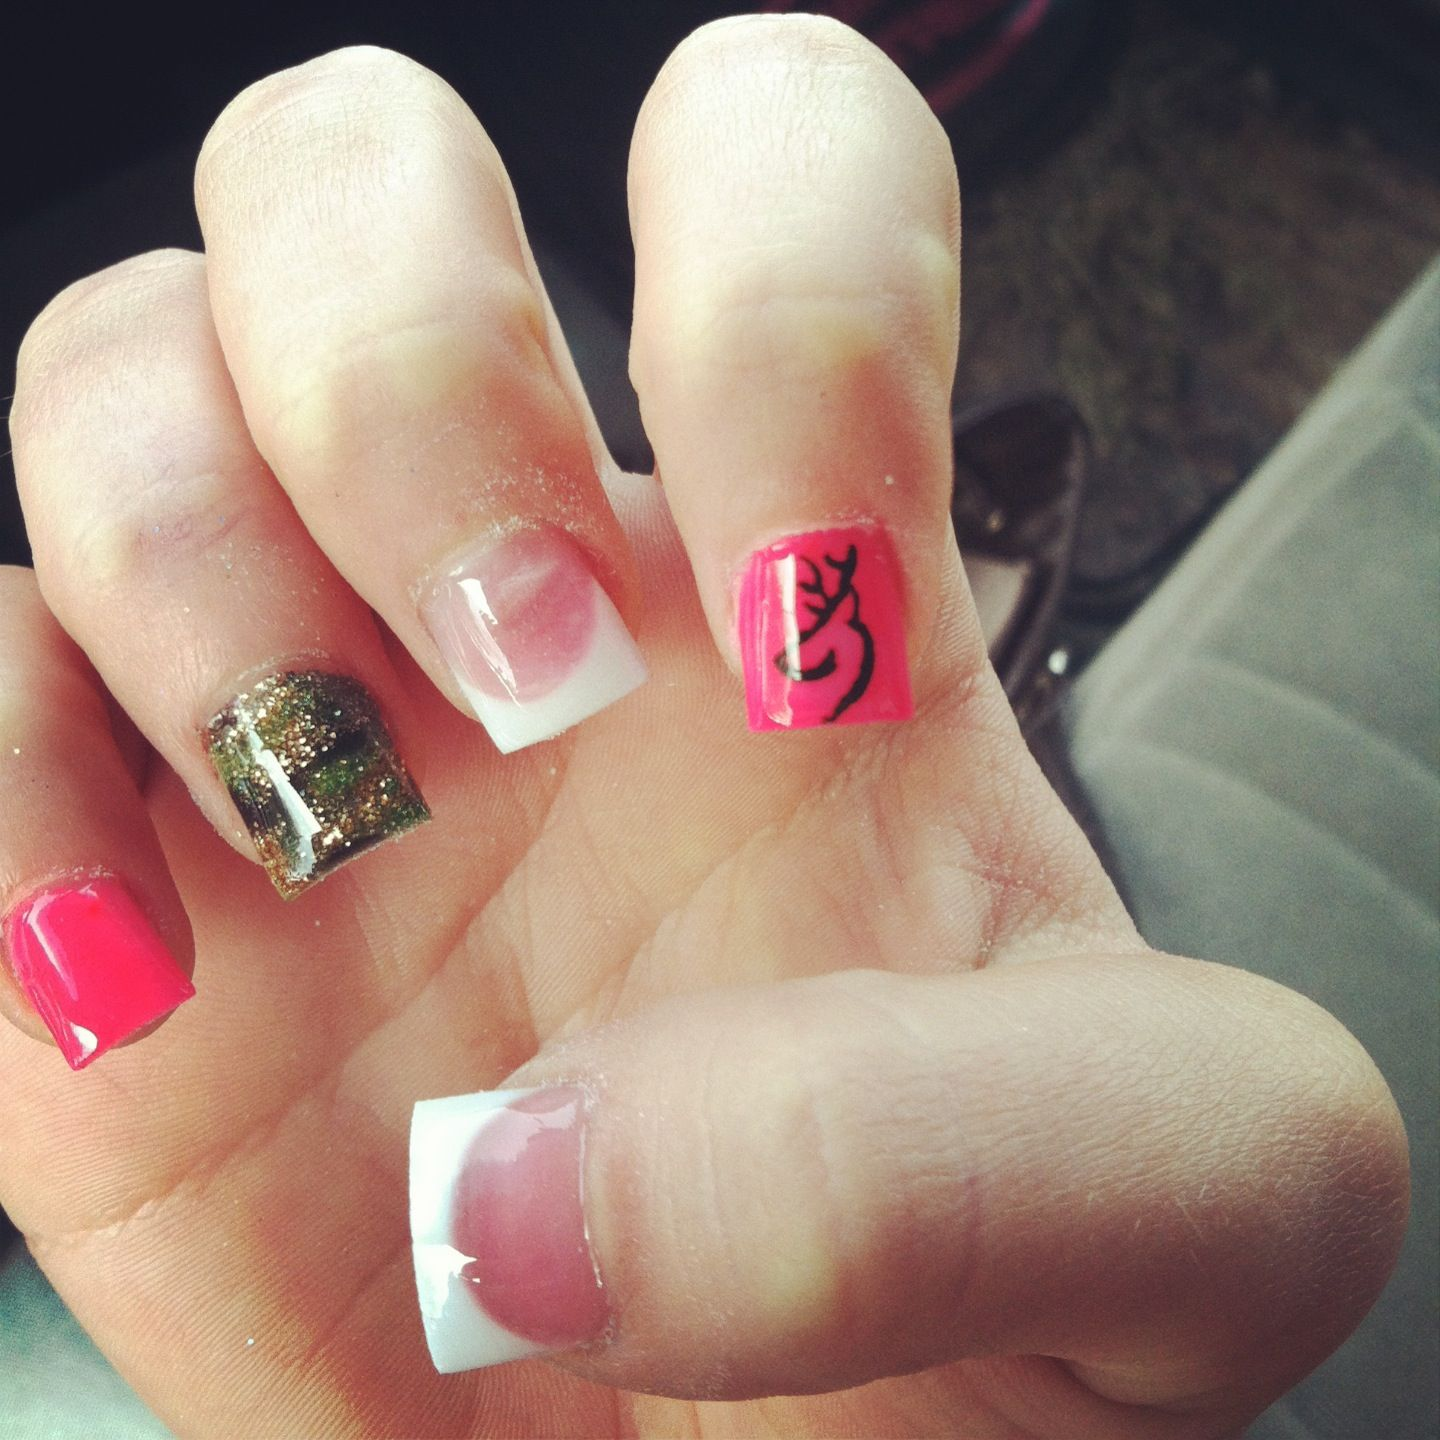 Browning nails, weird shape, and wouldn't do the white tip ...